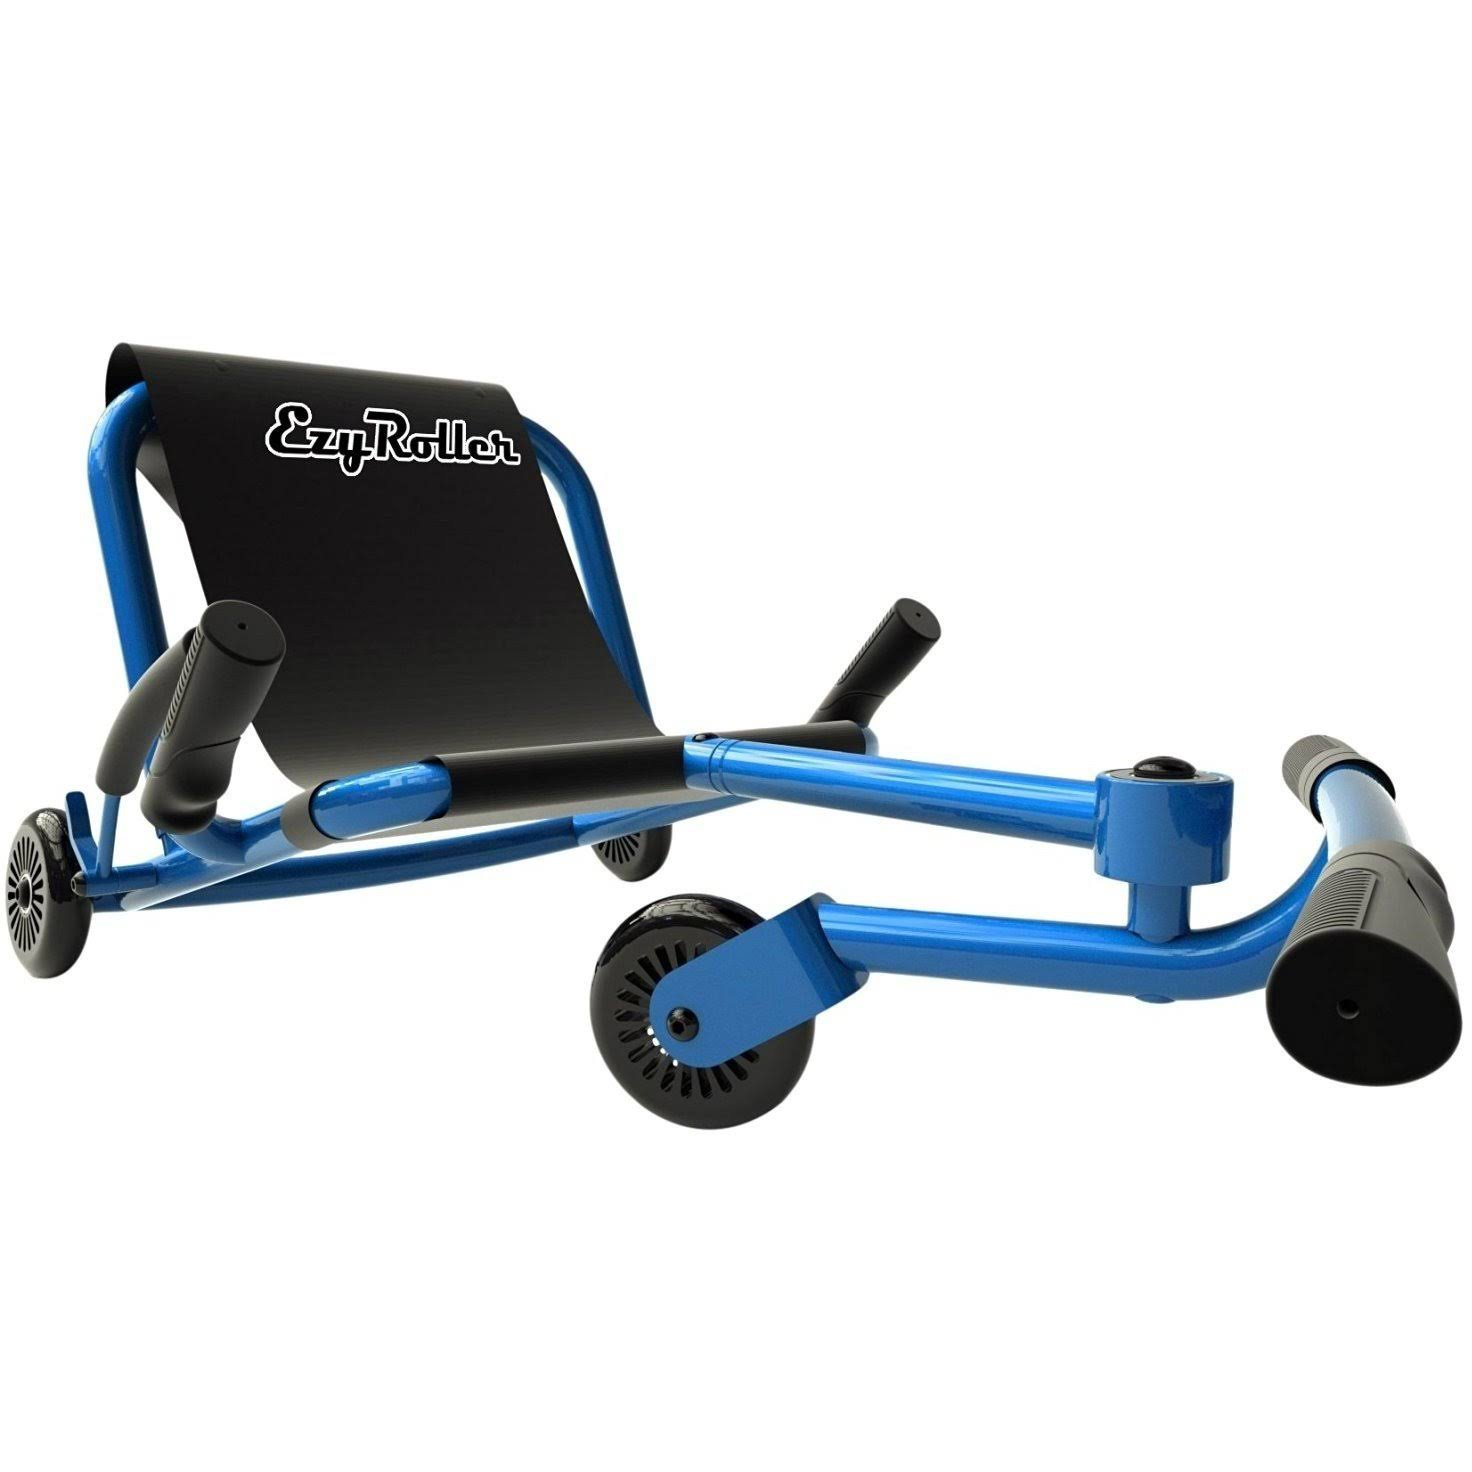 EzyRoller Classic Ride On - Blue, One Size